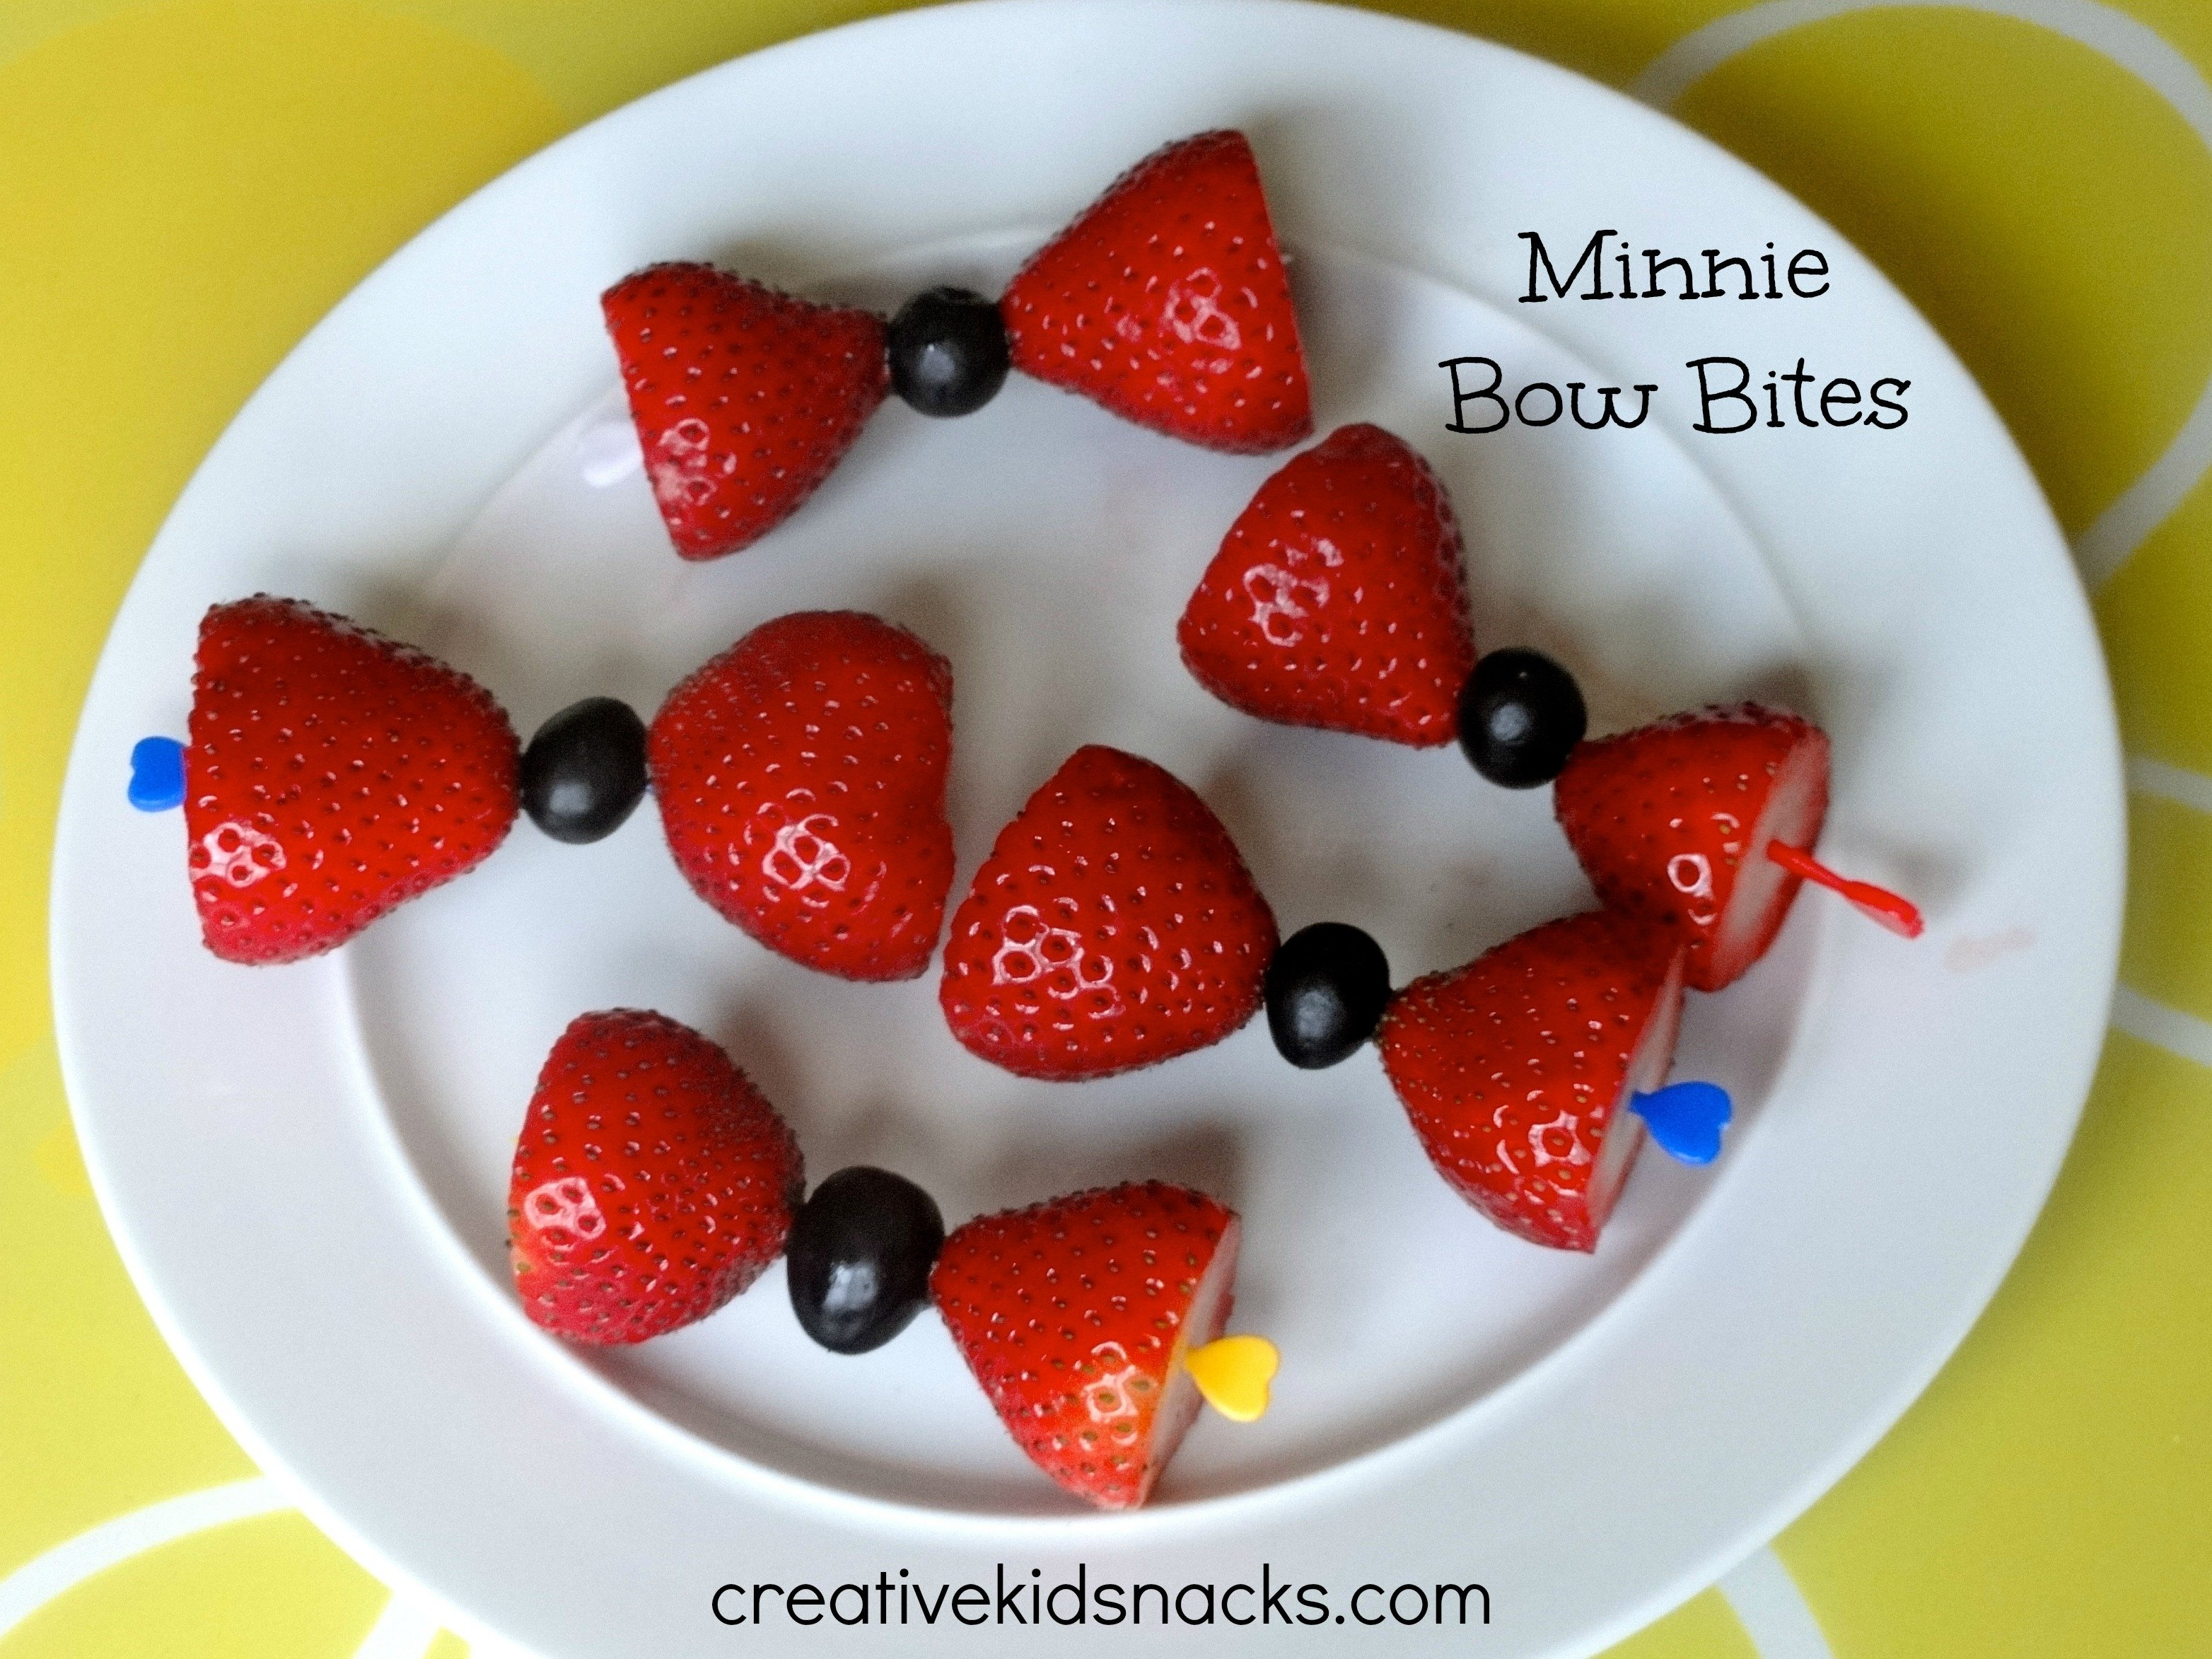 10 Nice Minnie Mouse Party Food Ideas minnie mouse birthday party food ideas 1 2021